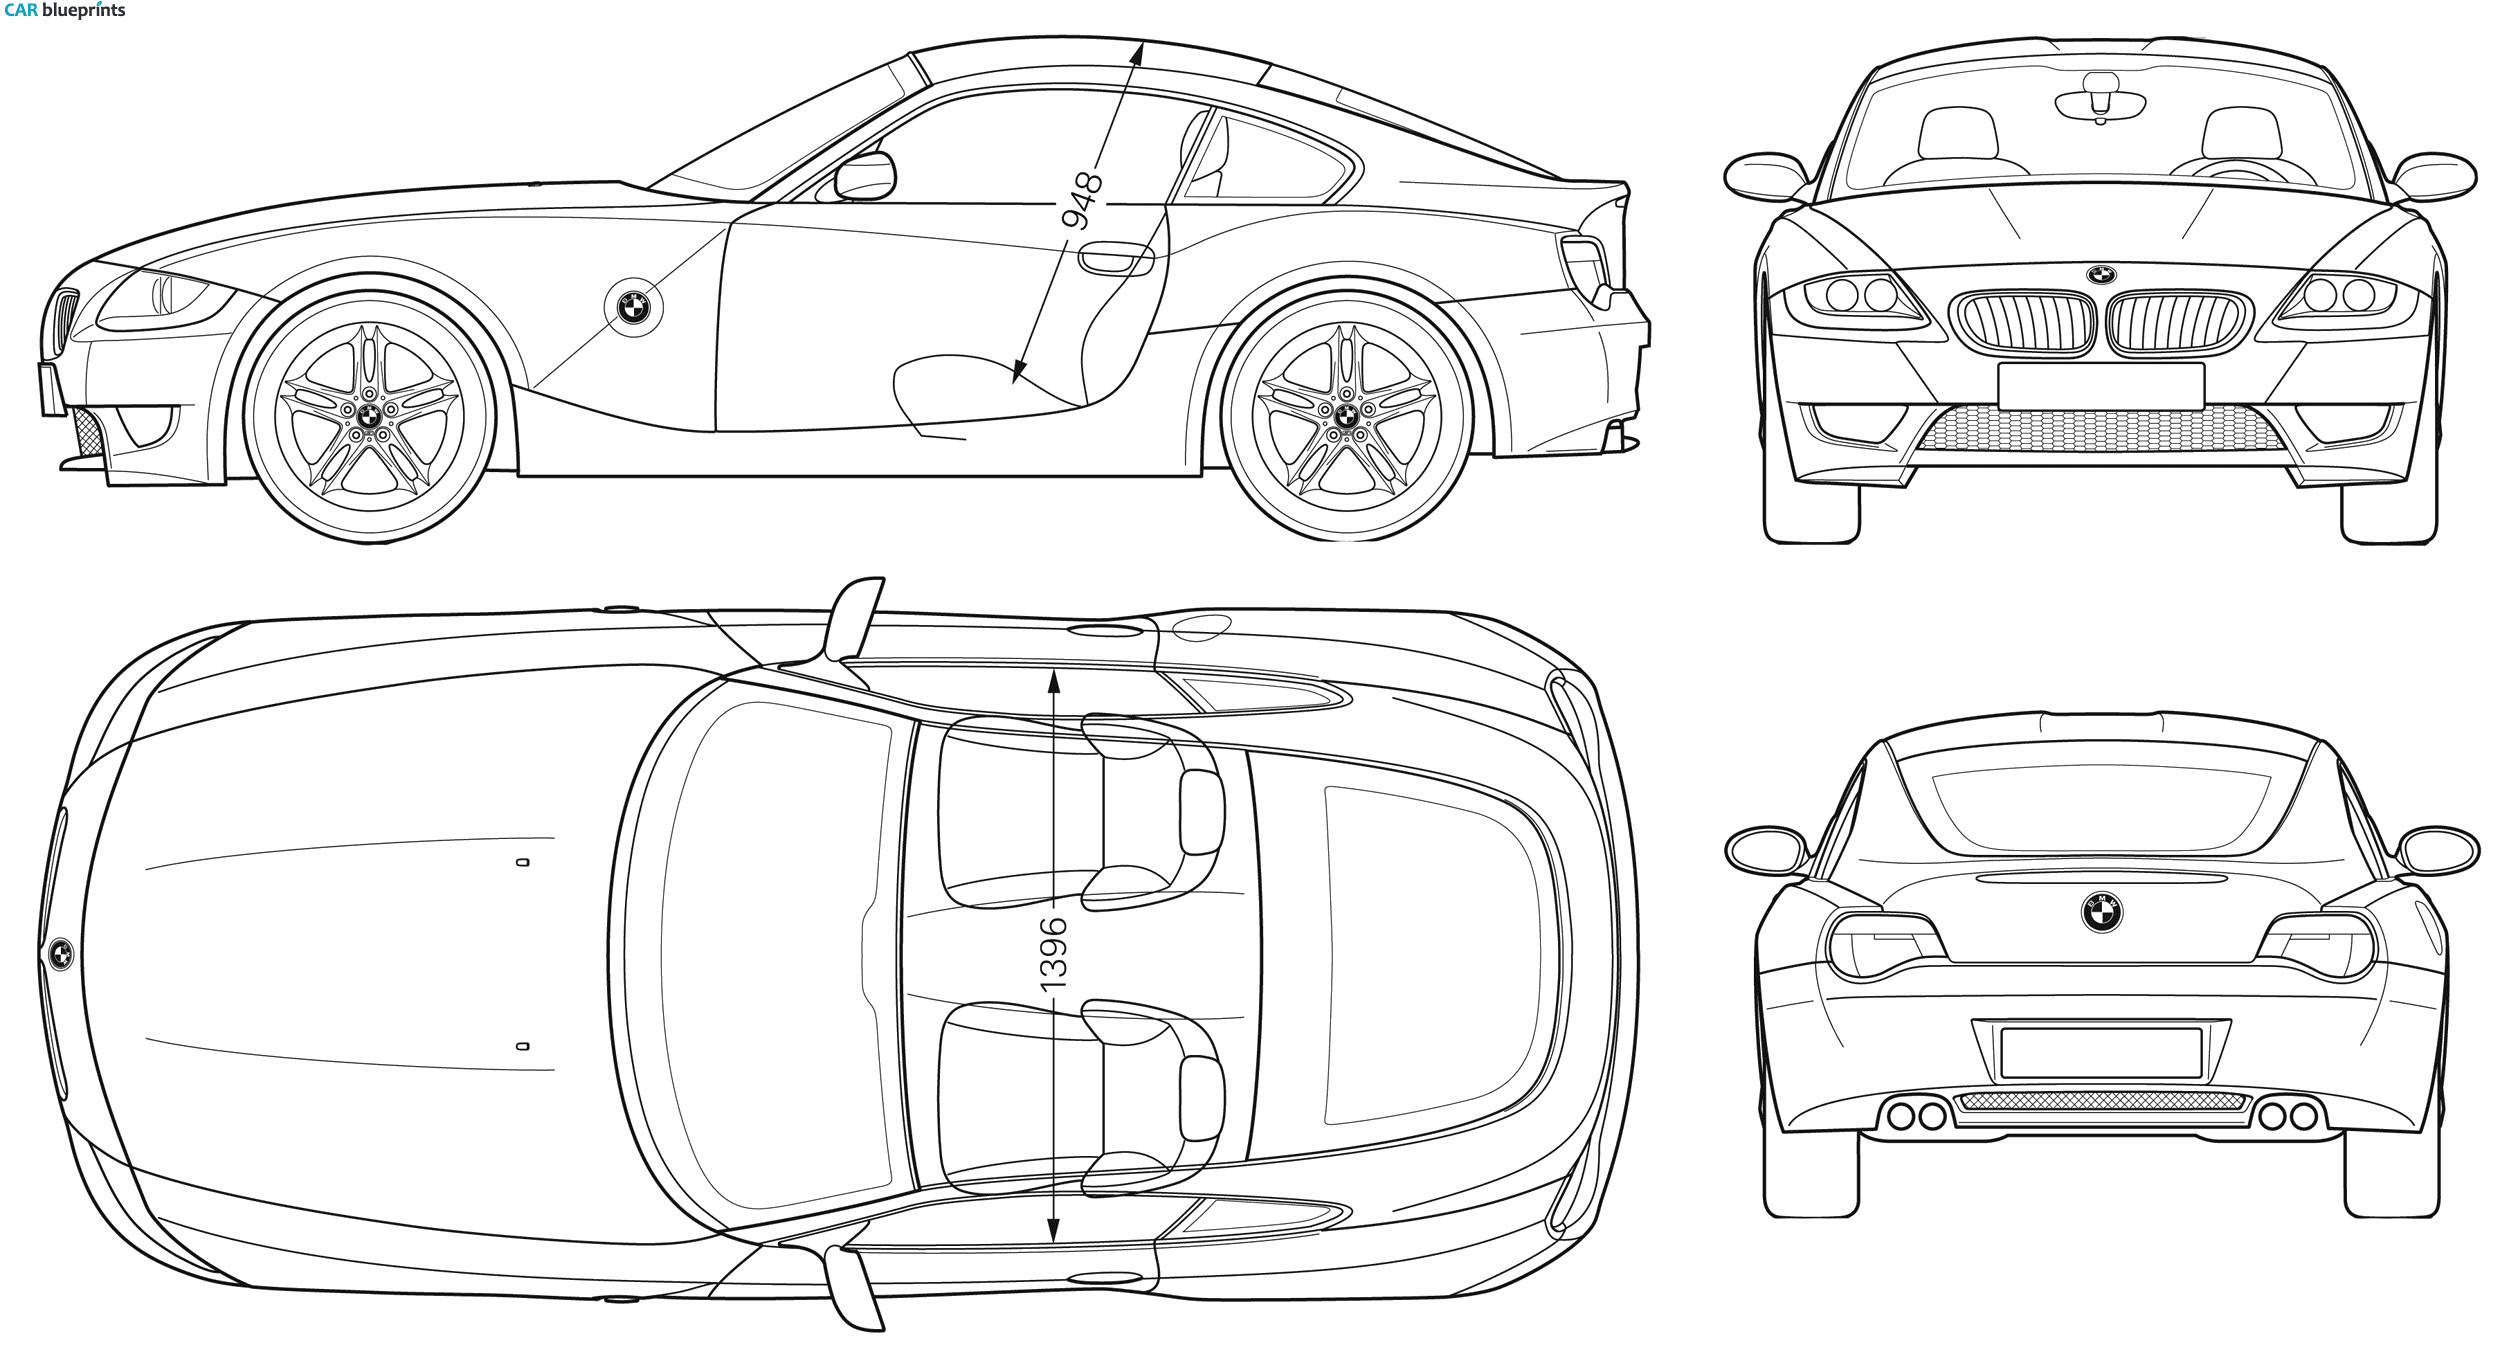 blueprint car - Google 검색 | blueprint | Pinterest | Bmw z4, Car ...